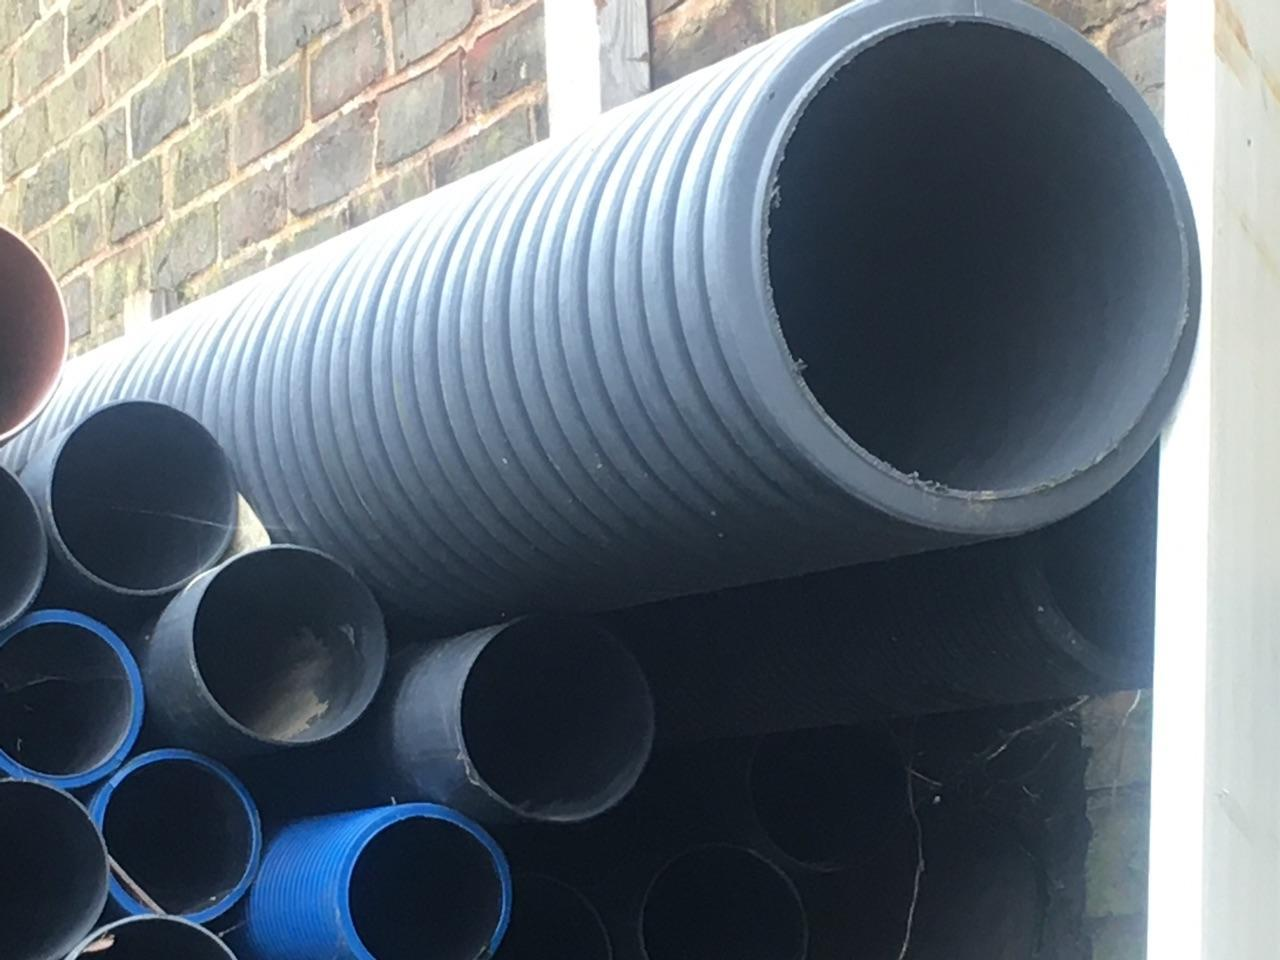 £275 General purpose ducting & pipes job lot. Commercial